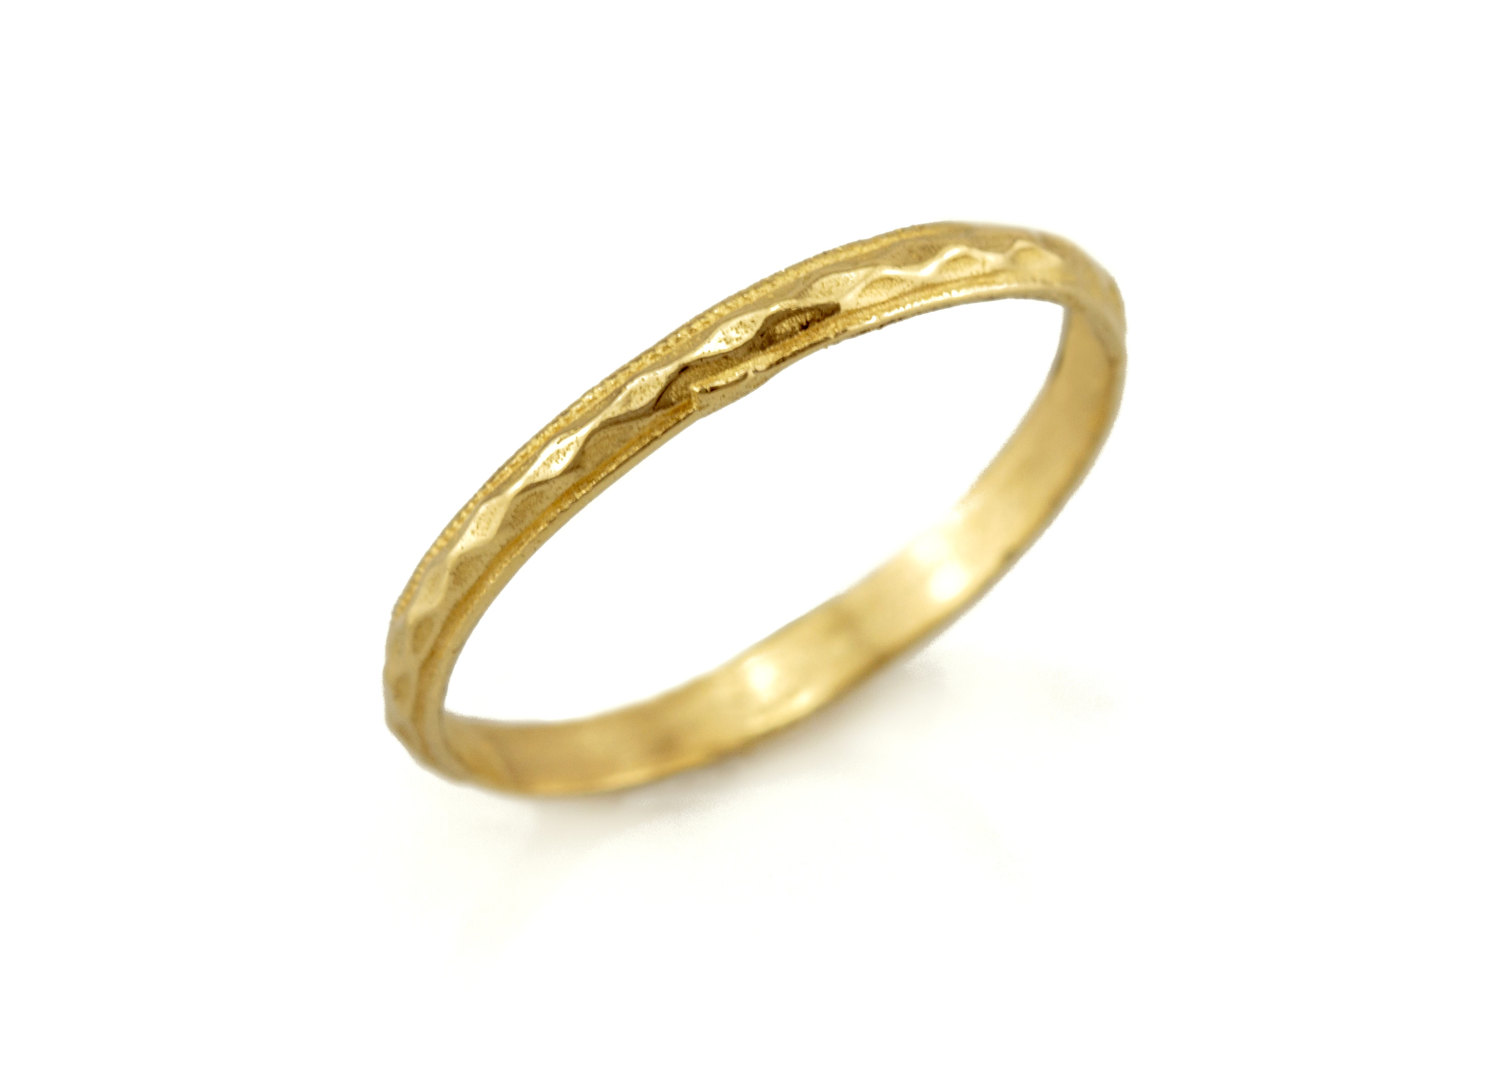 14k Gold Thin Wedding Band Ring With A